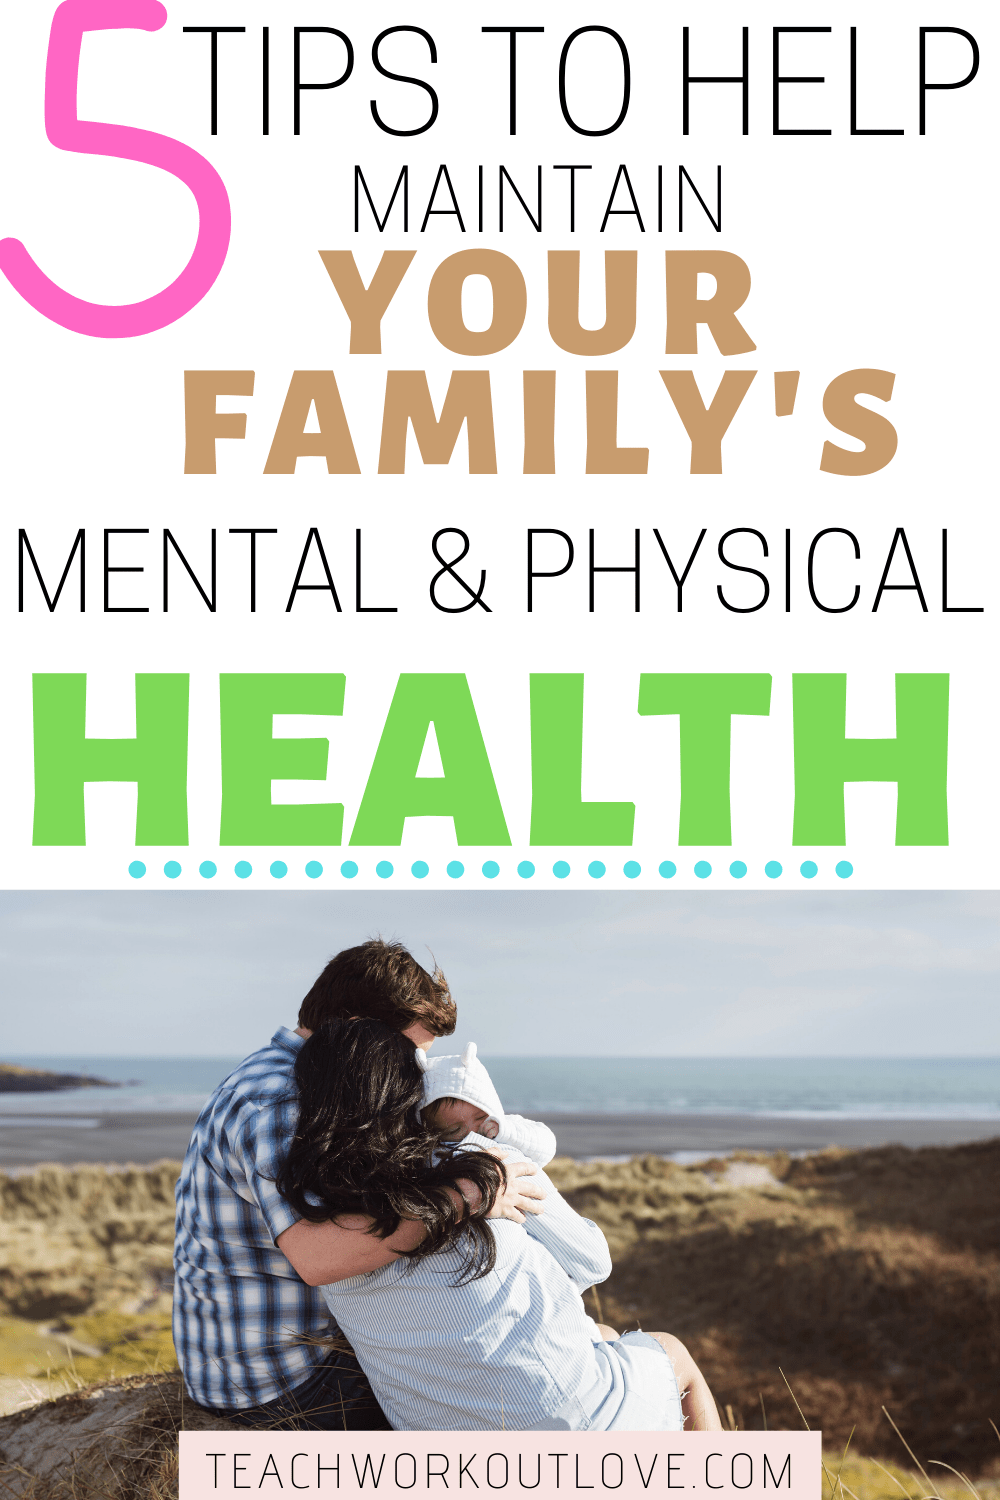 Mental & physical health are often treated as separate. Here's 5 tips to improving and maintaining mental and physical health for your family.